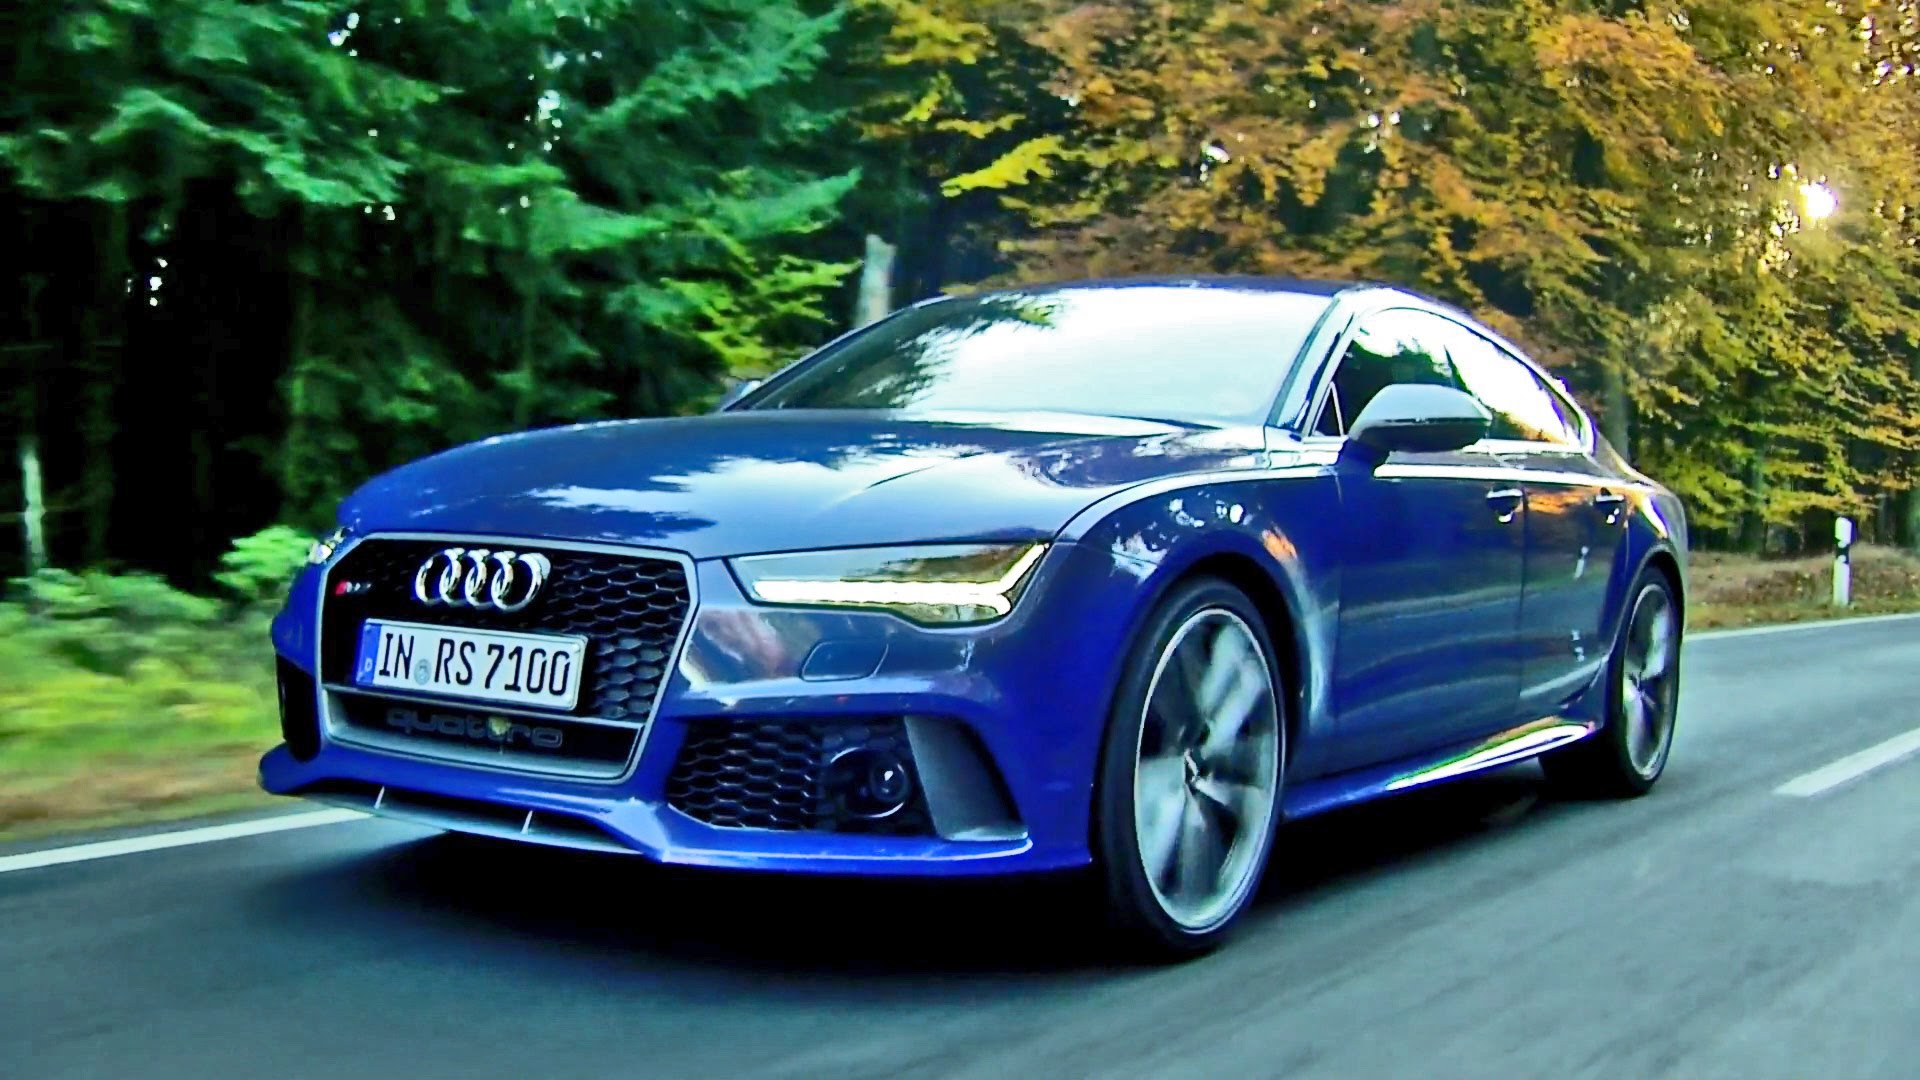 2016 audi rs7 performance review gearopen. Black Bedroom Furniture Sets. Home Design Ideas